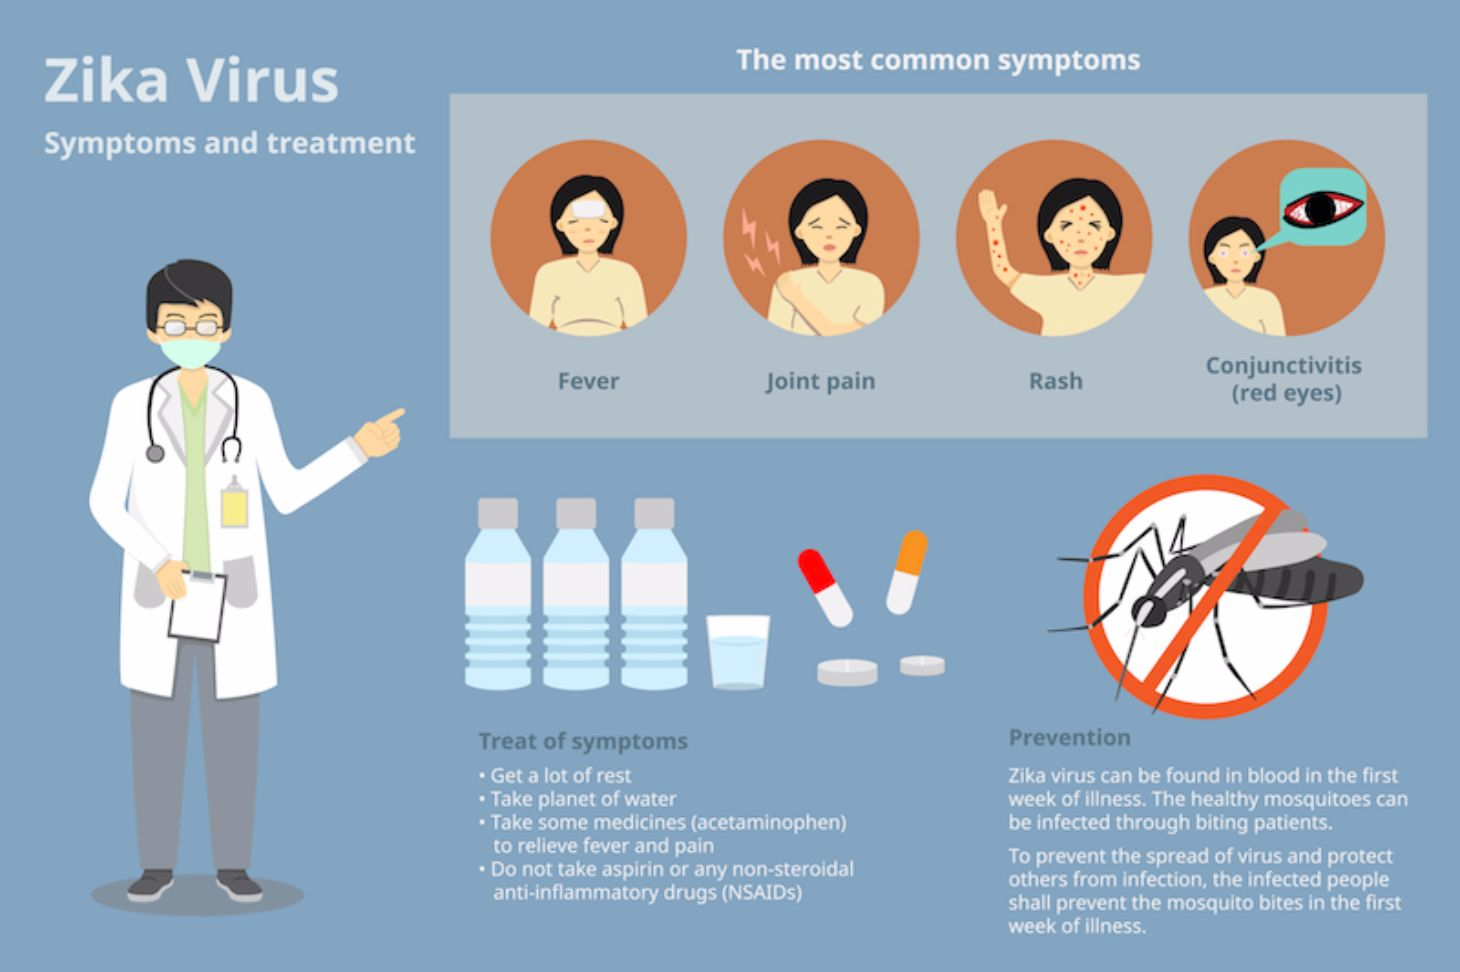 zika virus symptoms and treatment